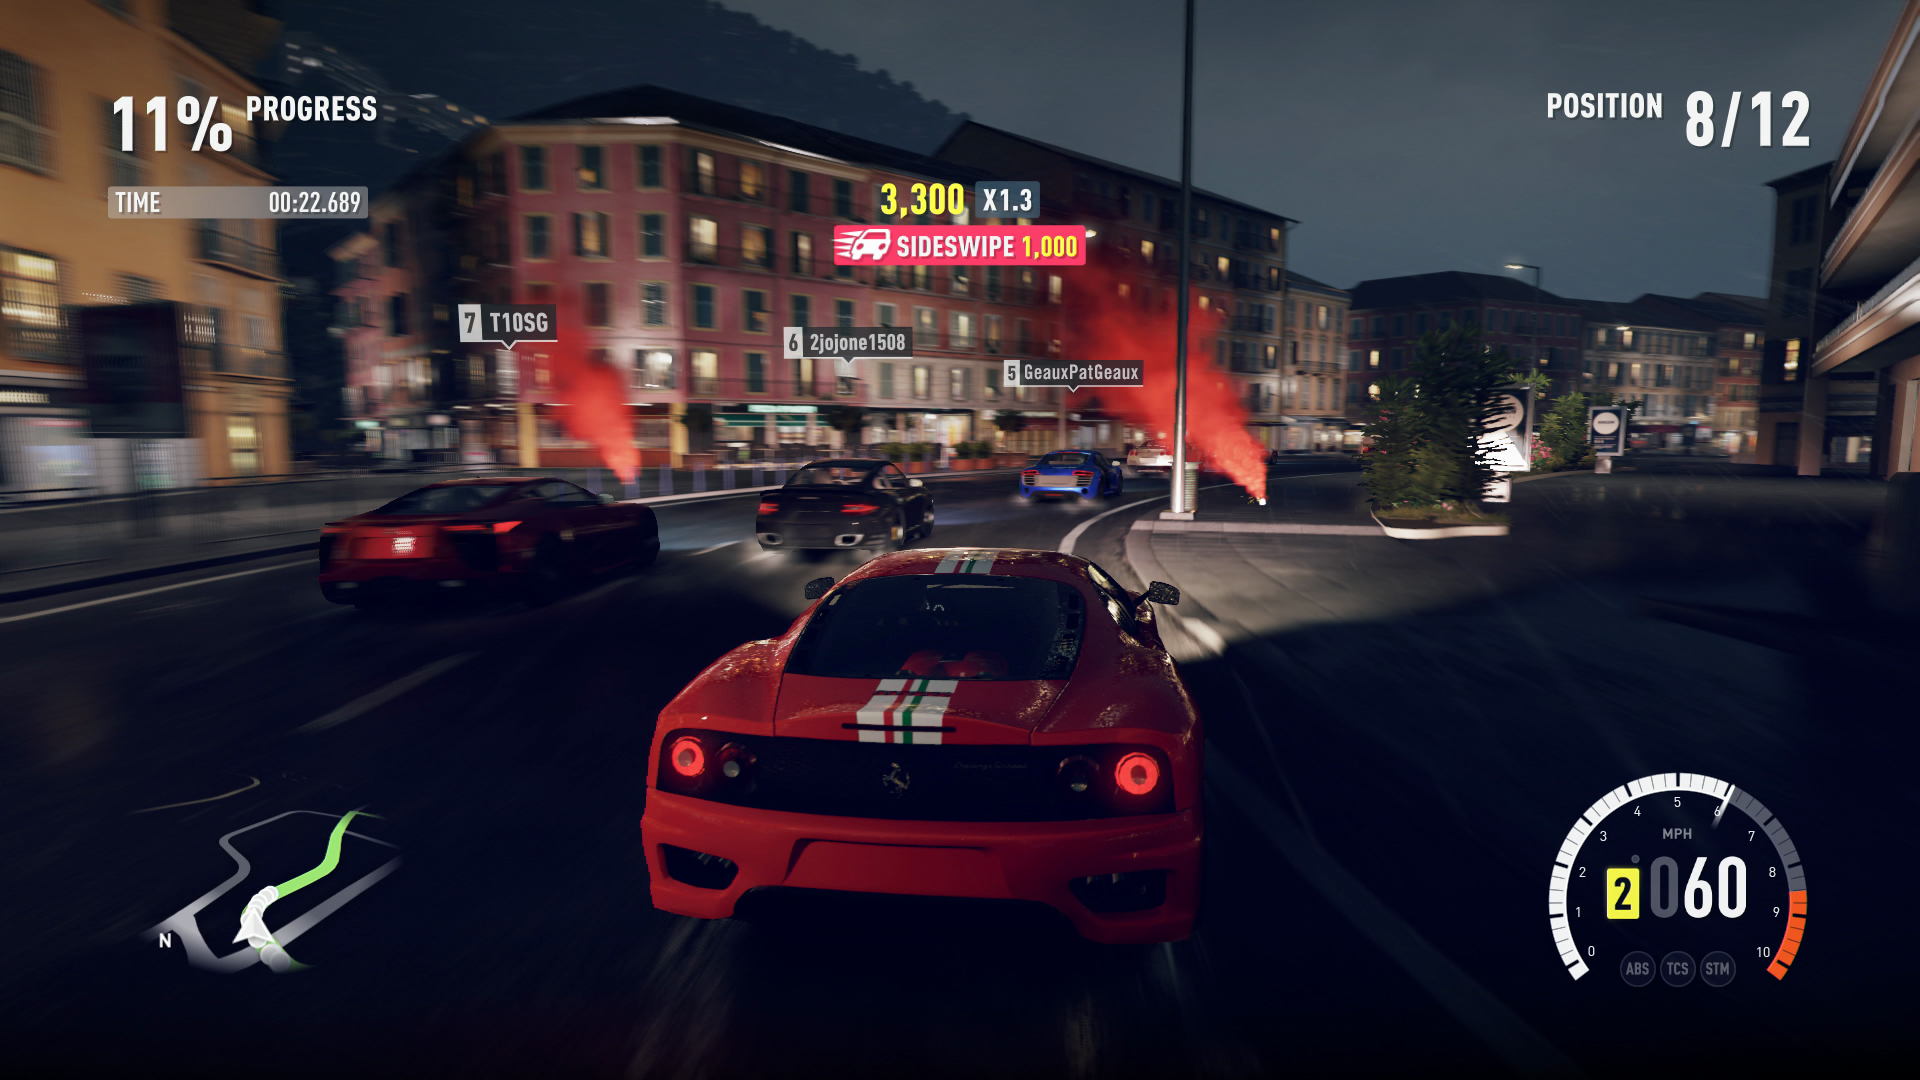 Racing at night in the city